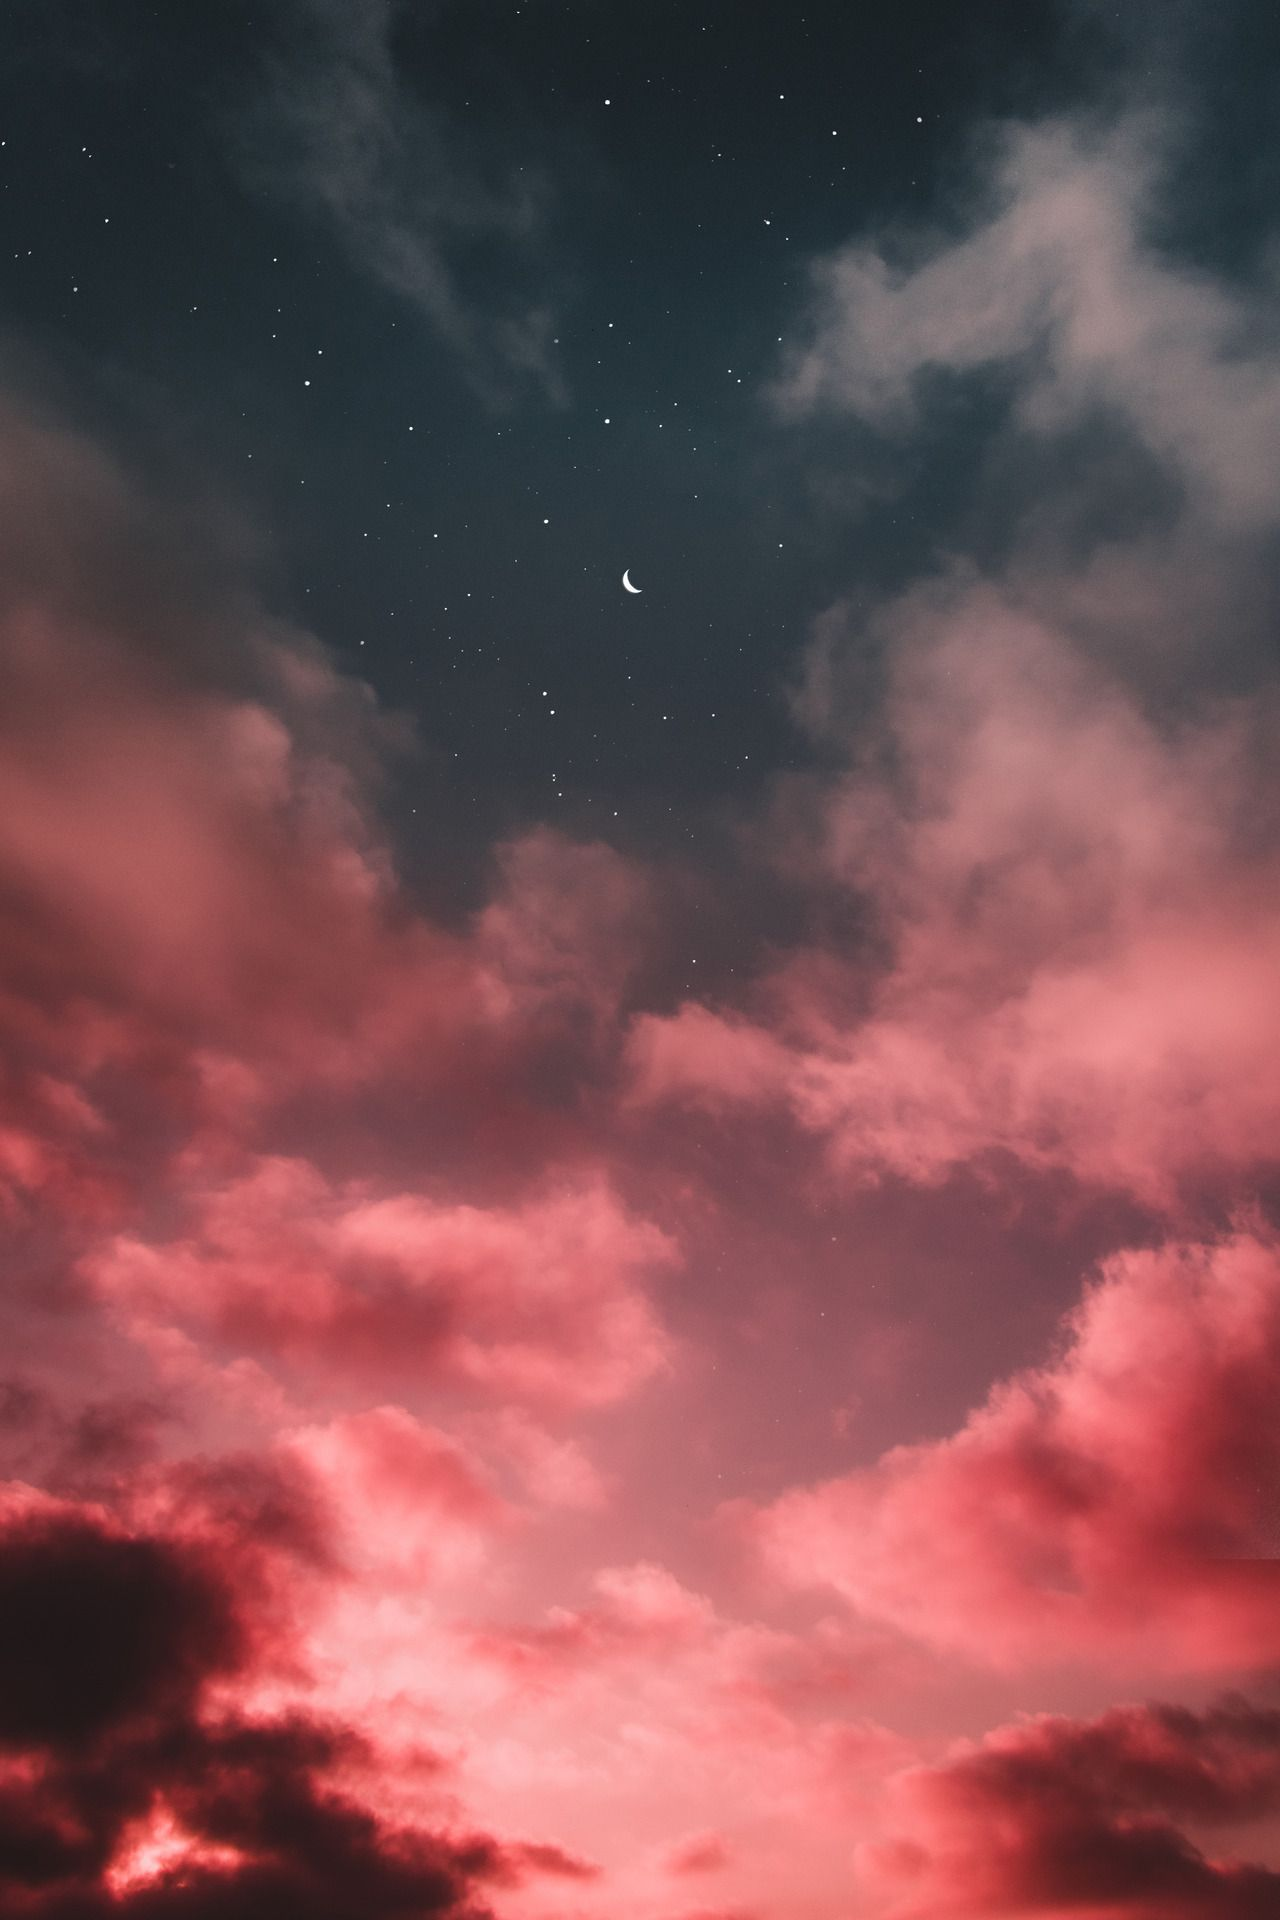 Creating aesthetically pleasing home screens is the new cool thing. Pink Sky Aesthetic Pastel Wallpapers - Top Free Pink Sky ...